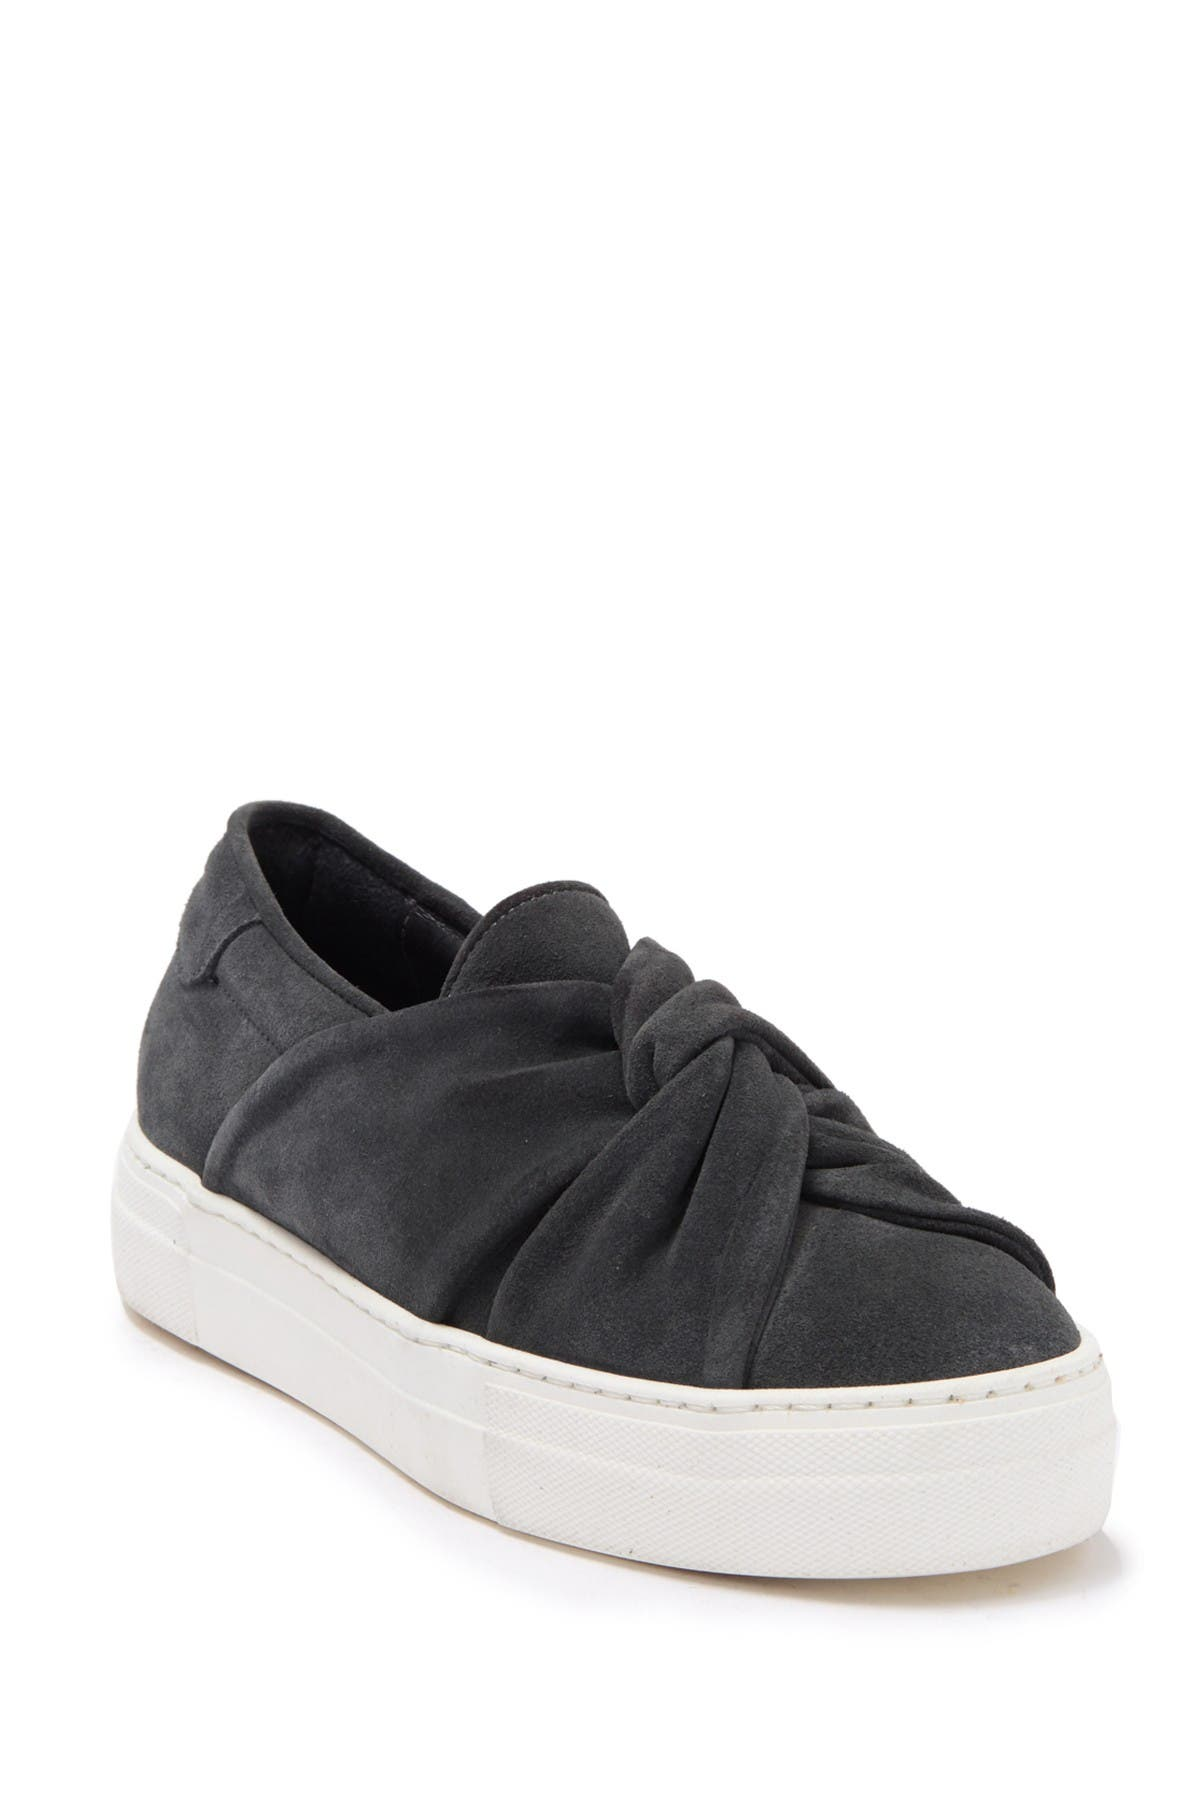 Image of Maje Knotted Slip On Sneaker